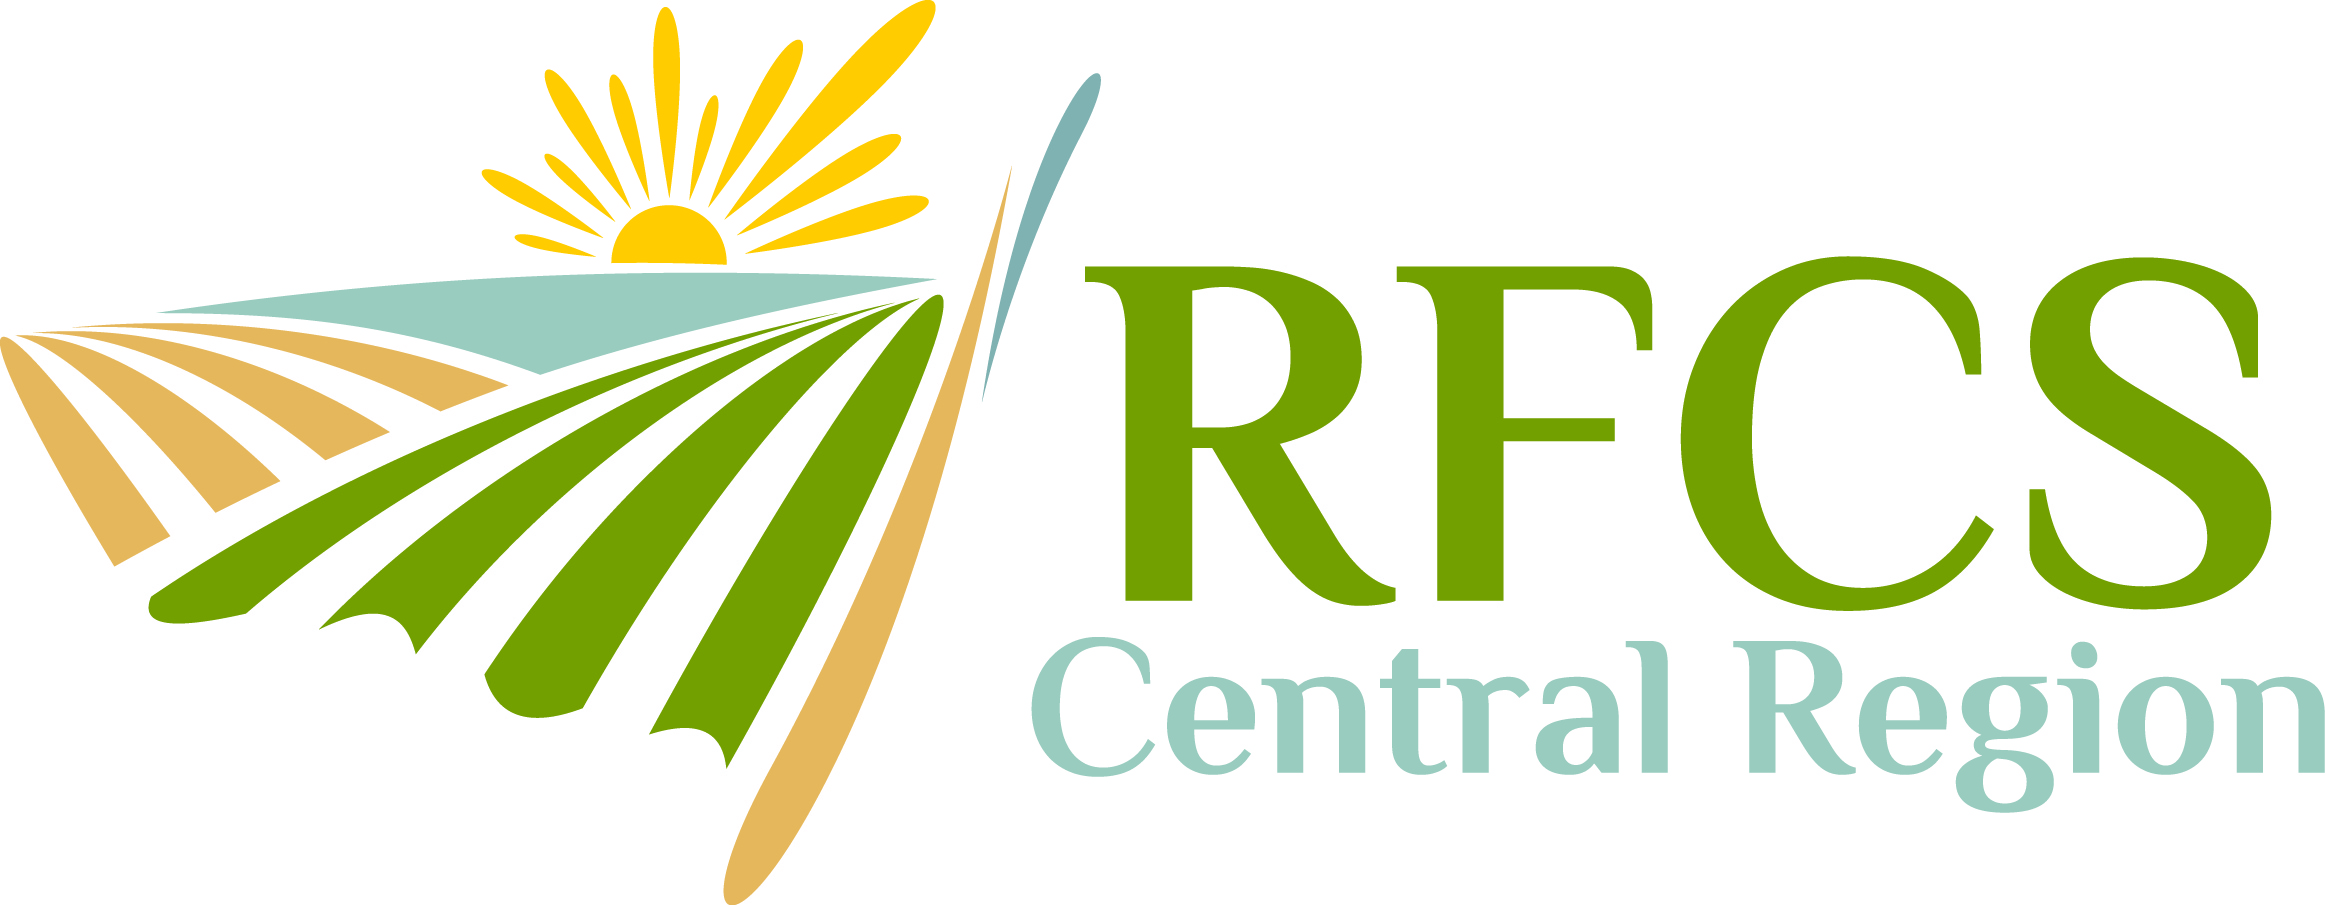 Rural Financial Counselling Service NSW Central Region